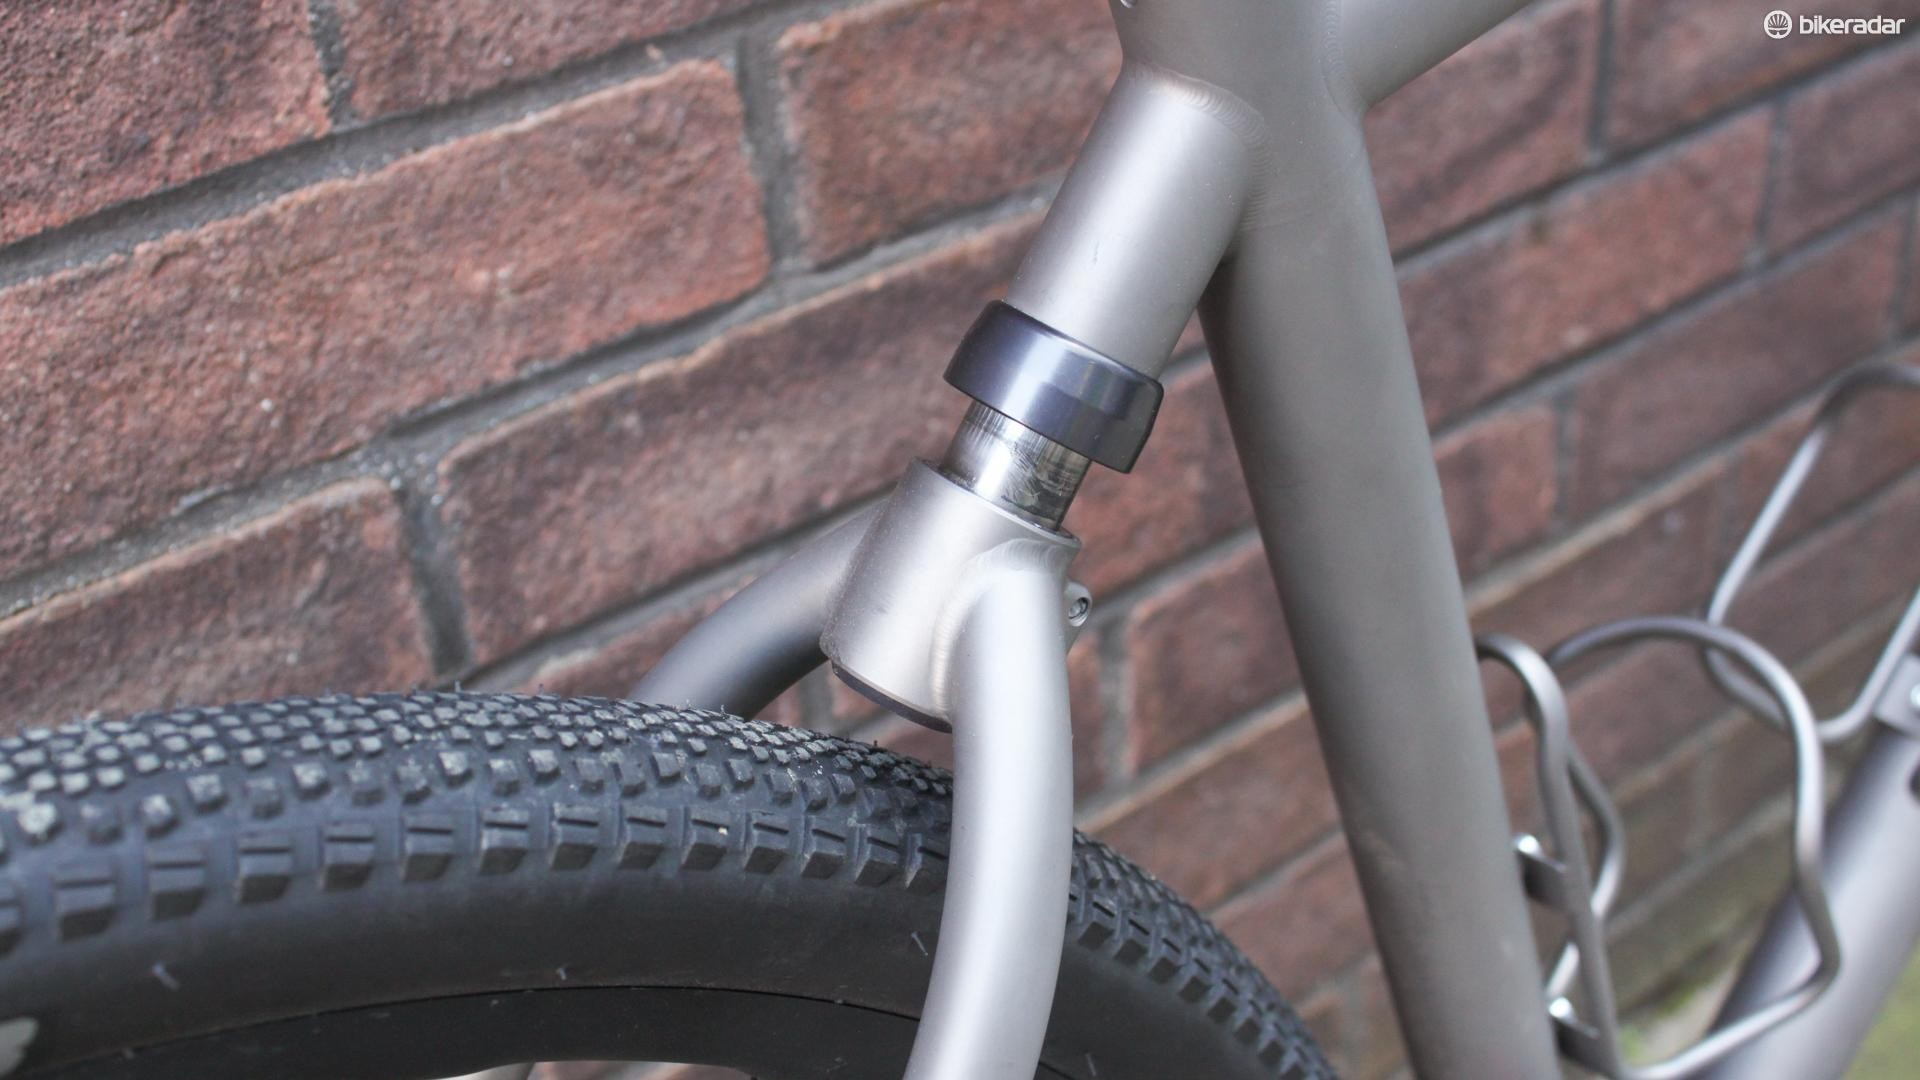 Rear suspension on a gravel bike? Sure, why not